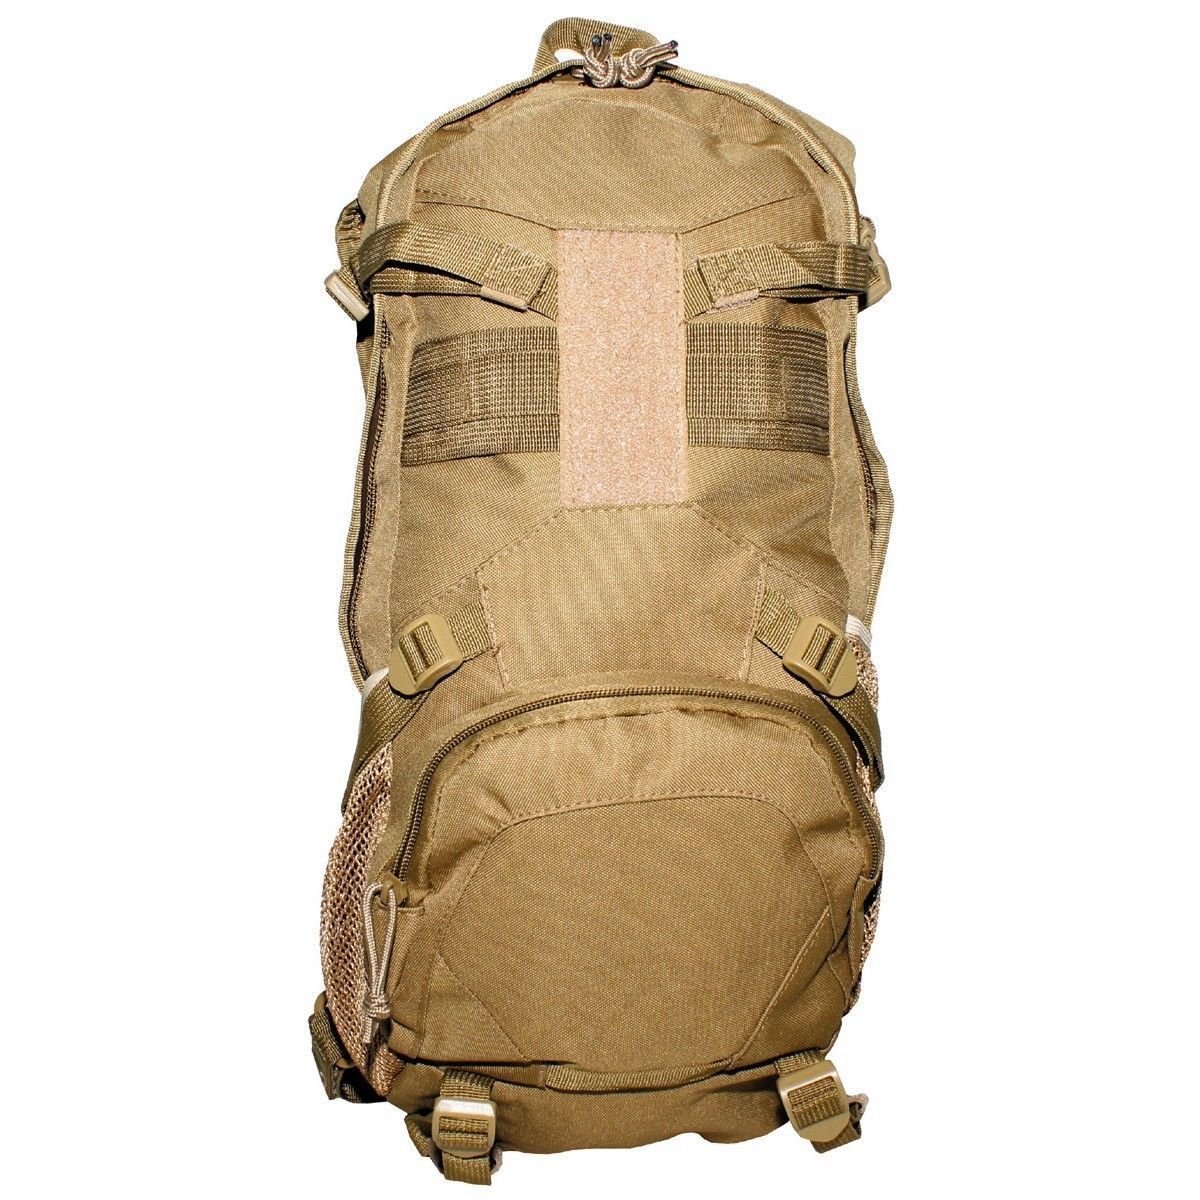 Professional Combat Scout Backpack 25L - Coyote